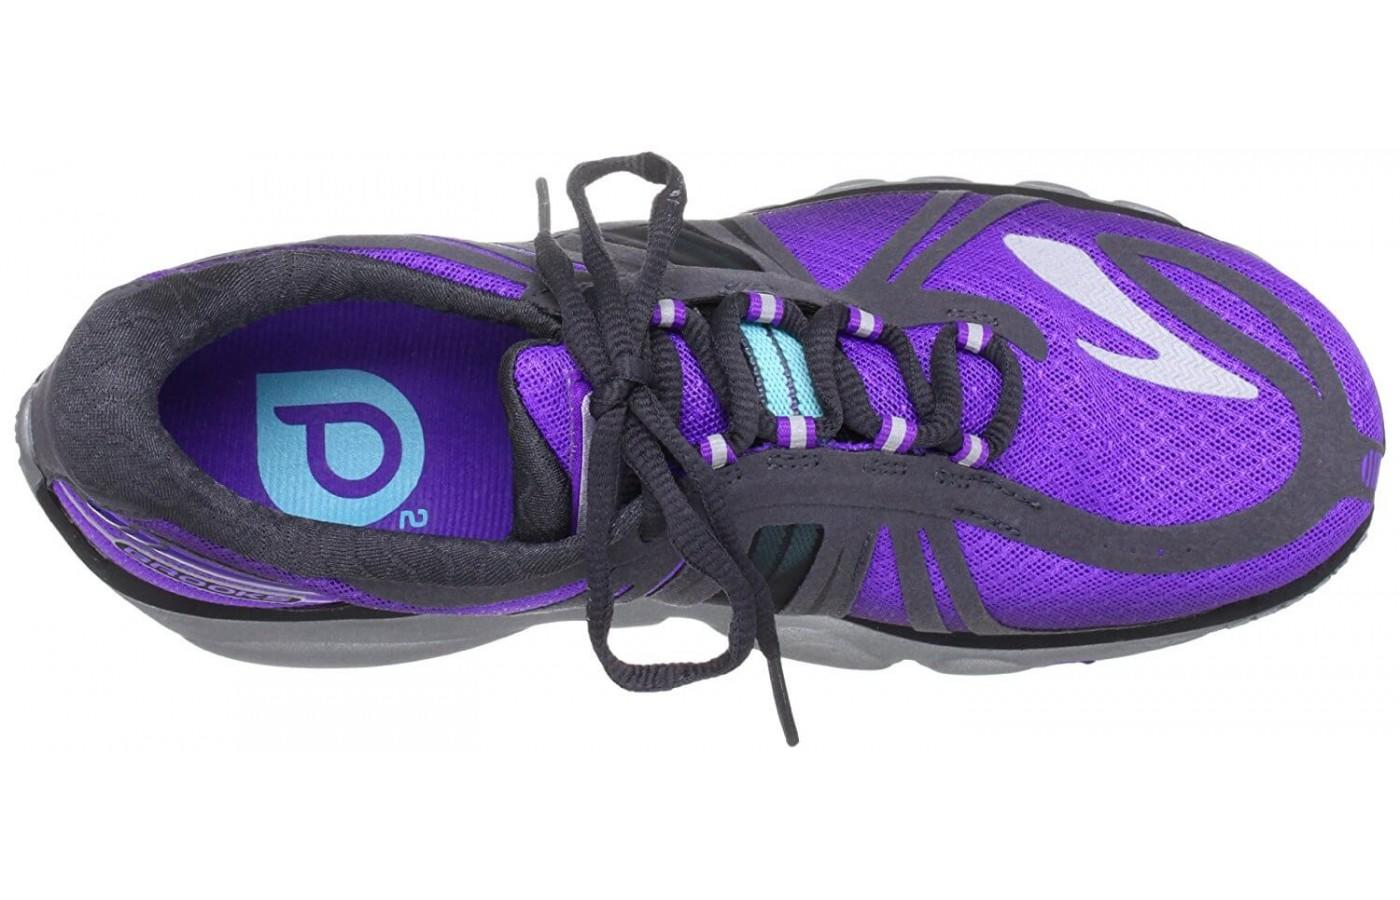 Brooks PureCadence 2 features asymmetrical lacing